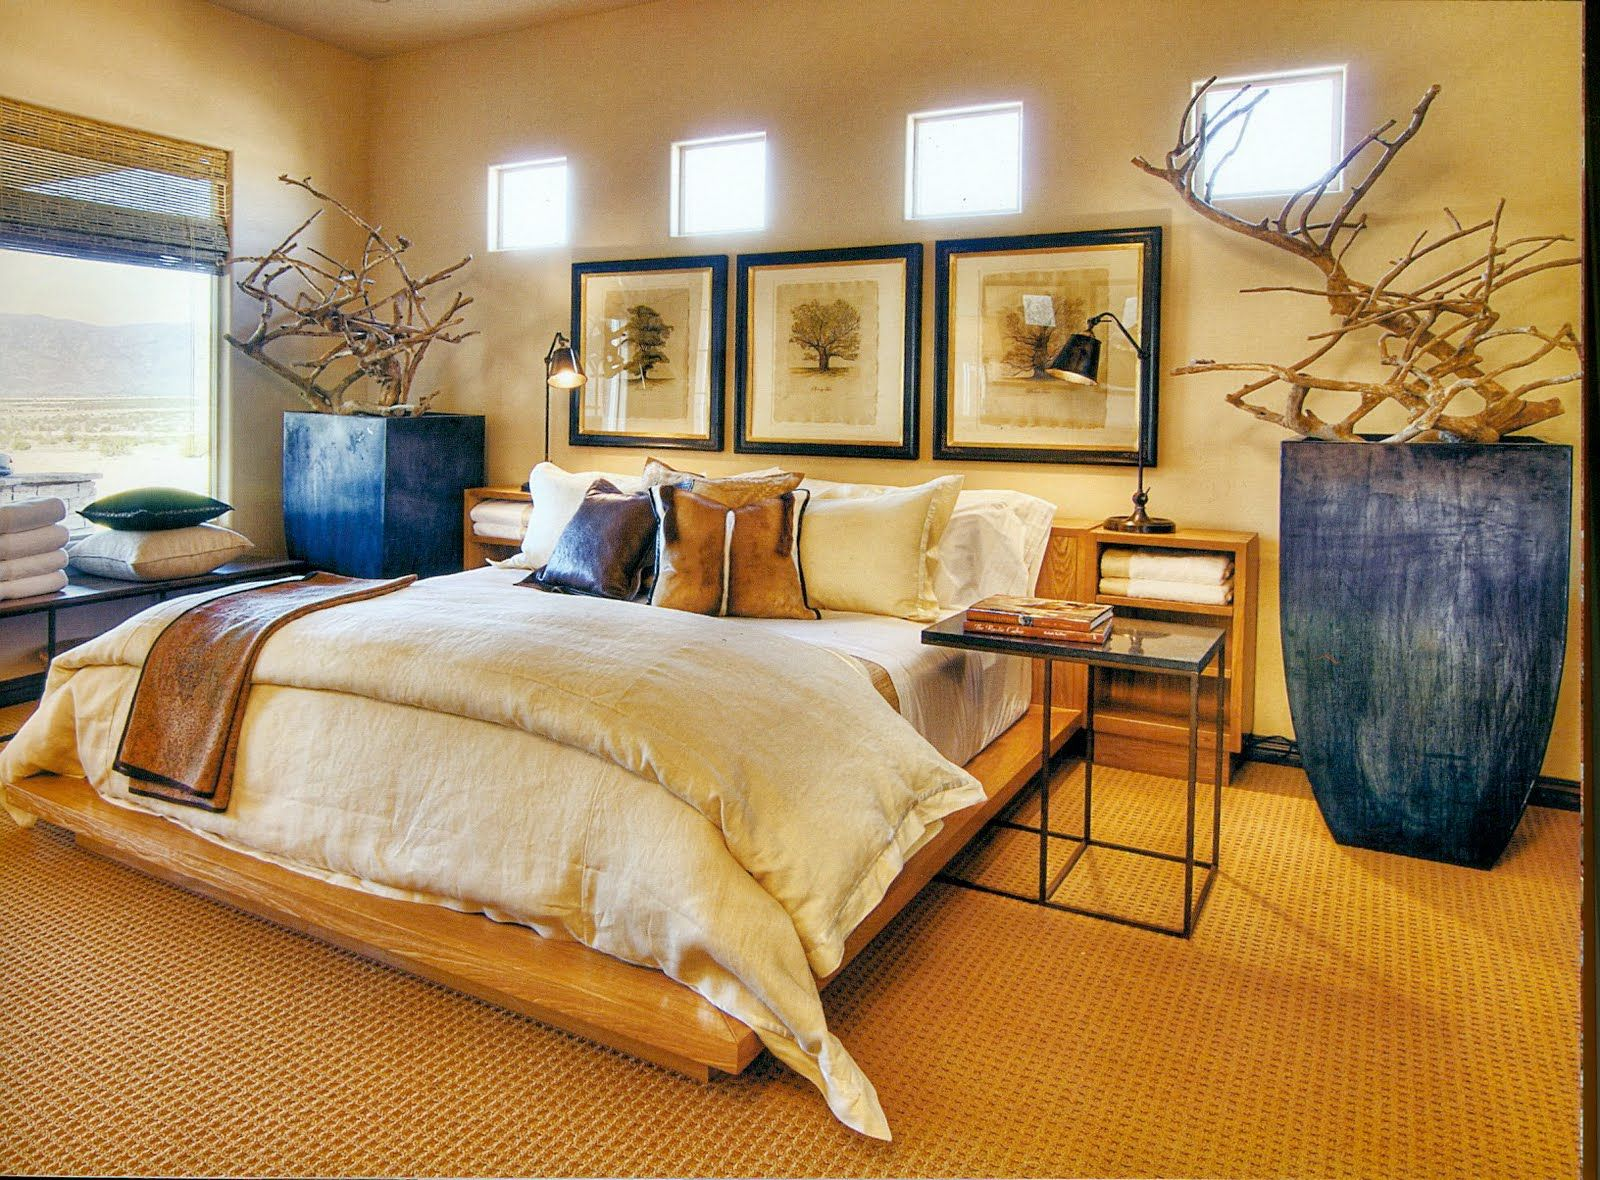 Deco Africaine Moderne Decorating With African African Contemporary Bedroom